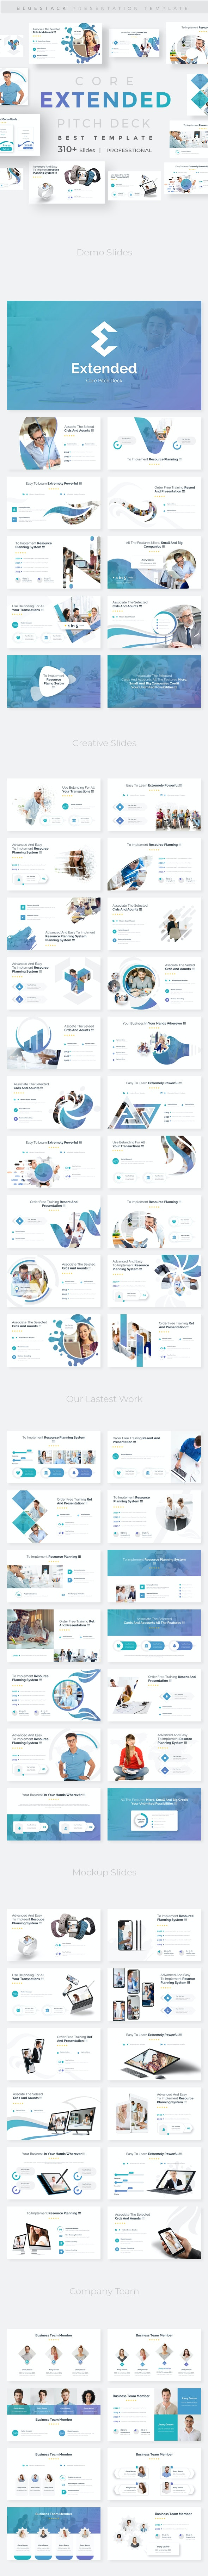 Extended Core Pitch Deck Keynote Template - Business Keynote Templates